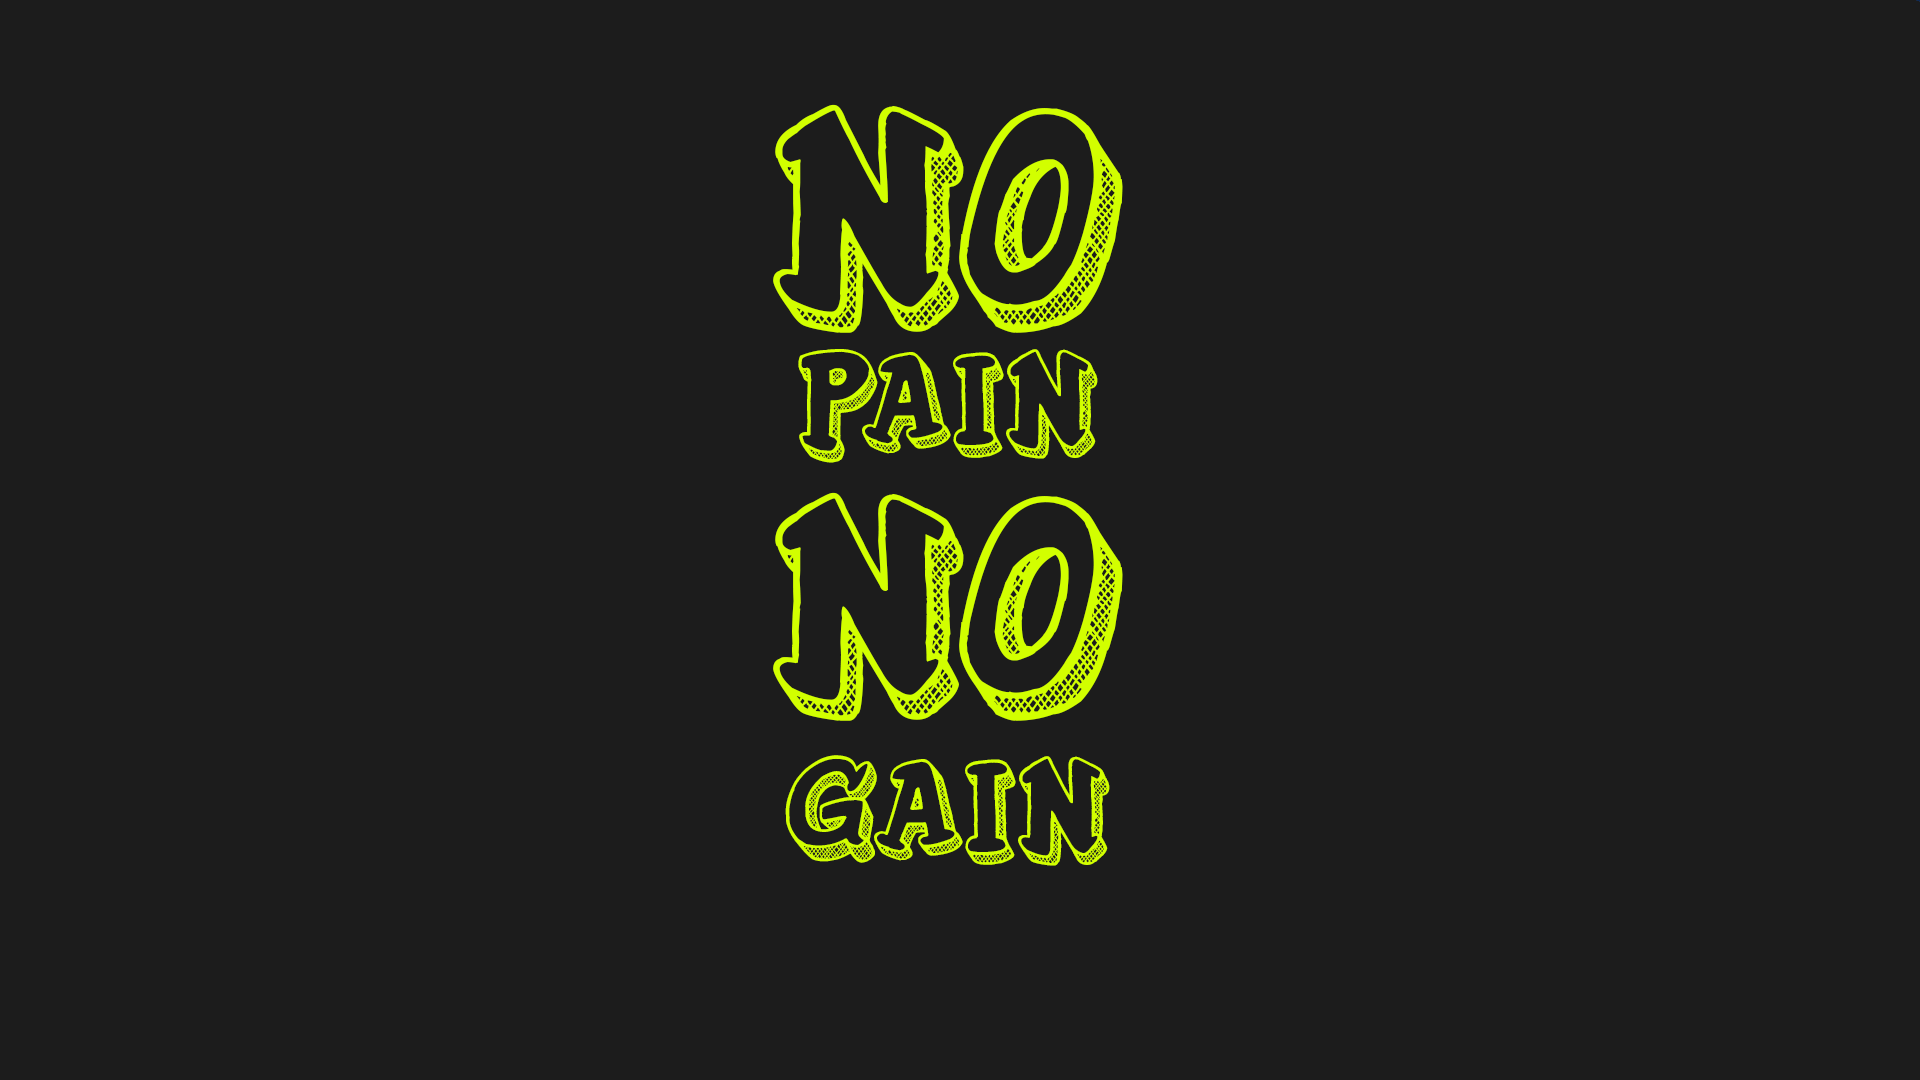 No Pain No Gain Wallpapers - Wallpaper Cave